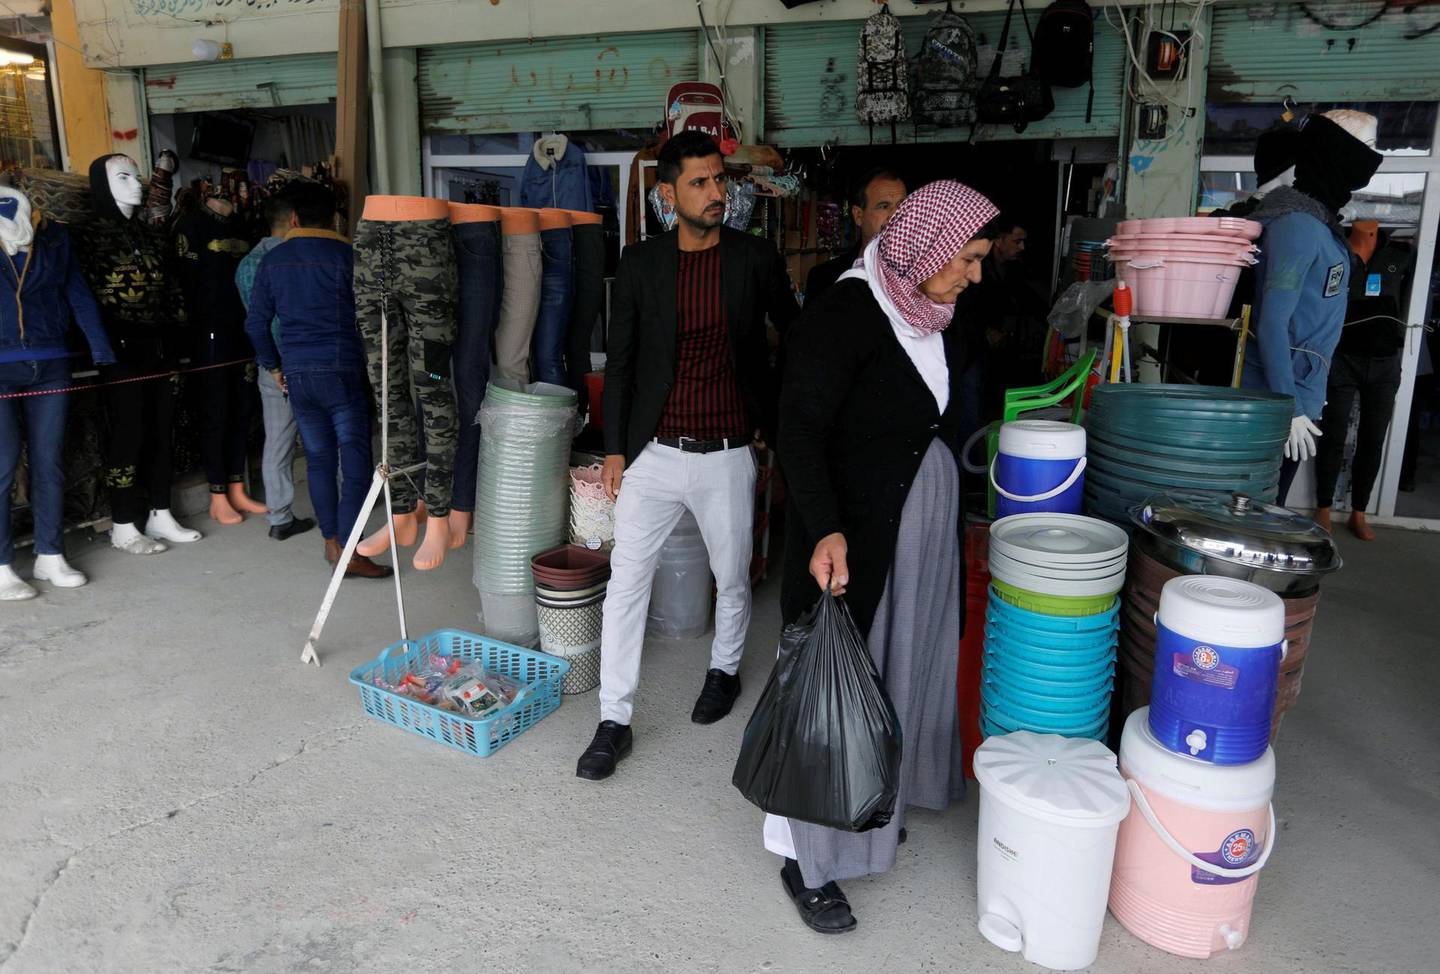 People from the minority Yazidi sect shop at a market in Sinjar, Iraq December 1, 2020. REUTERS/Khalid al-Mousily